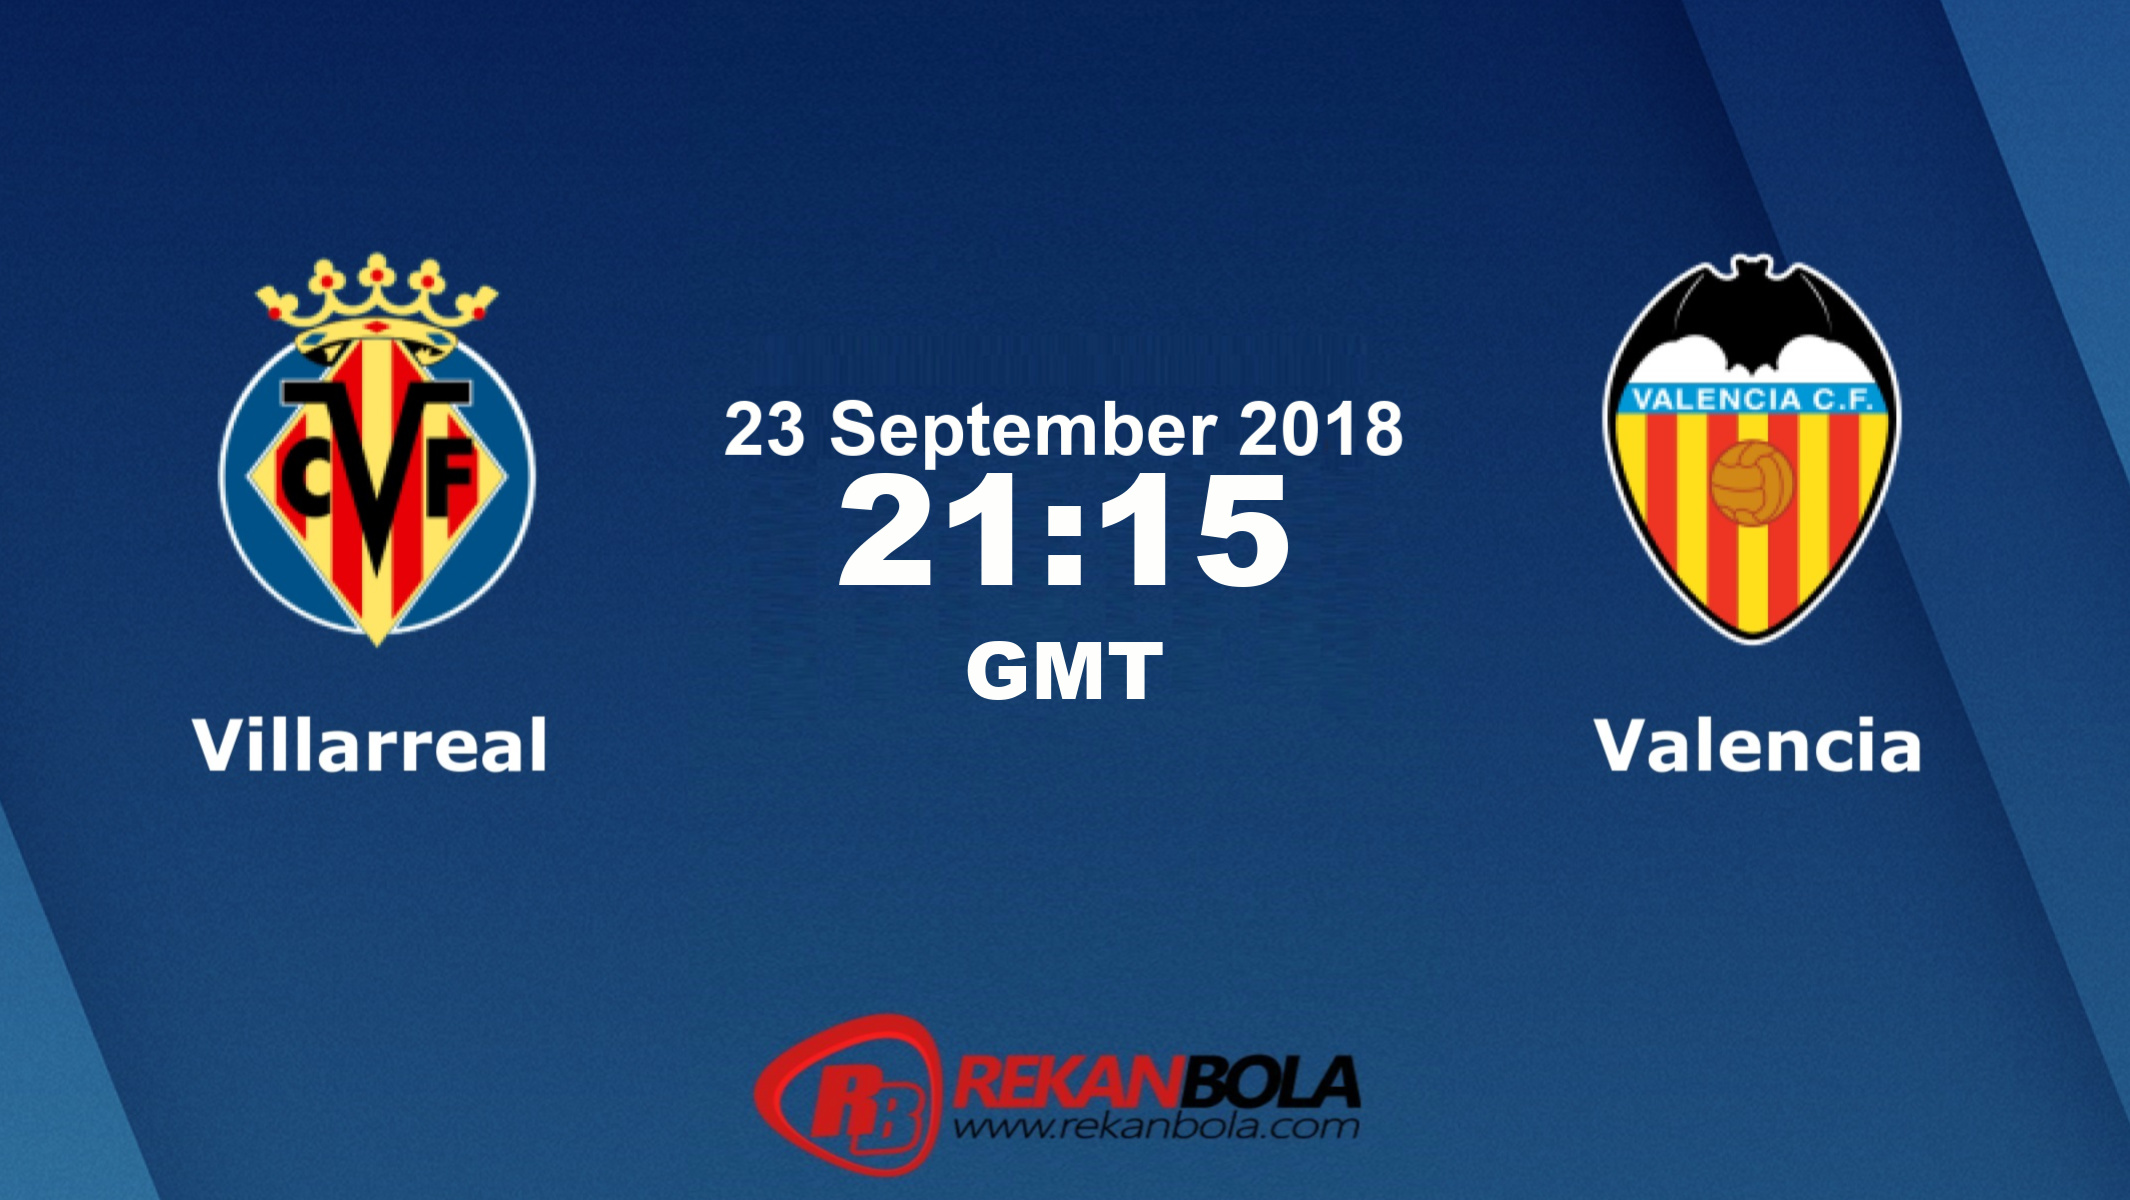 Nonton Siaran Live Streaming Villarreal Vs Valencia 23 September 2018